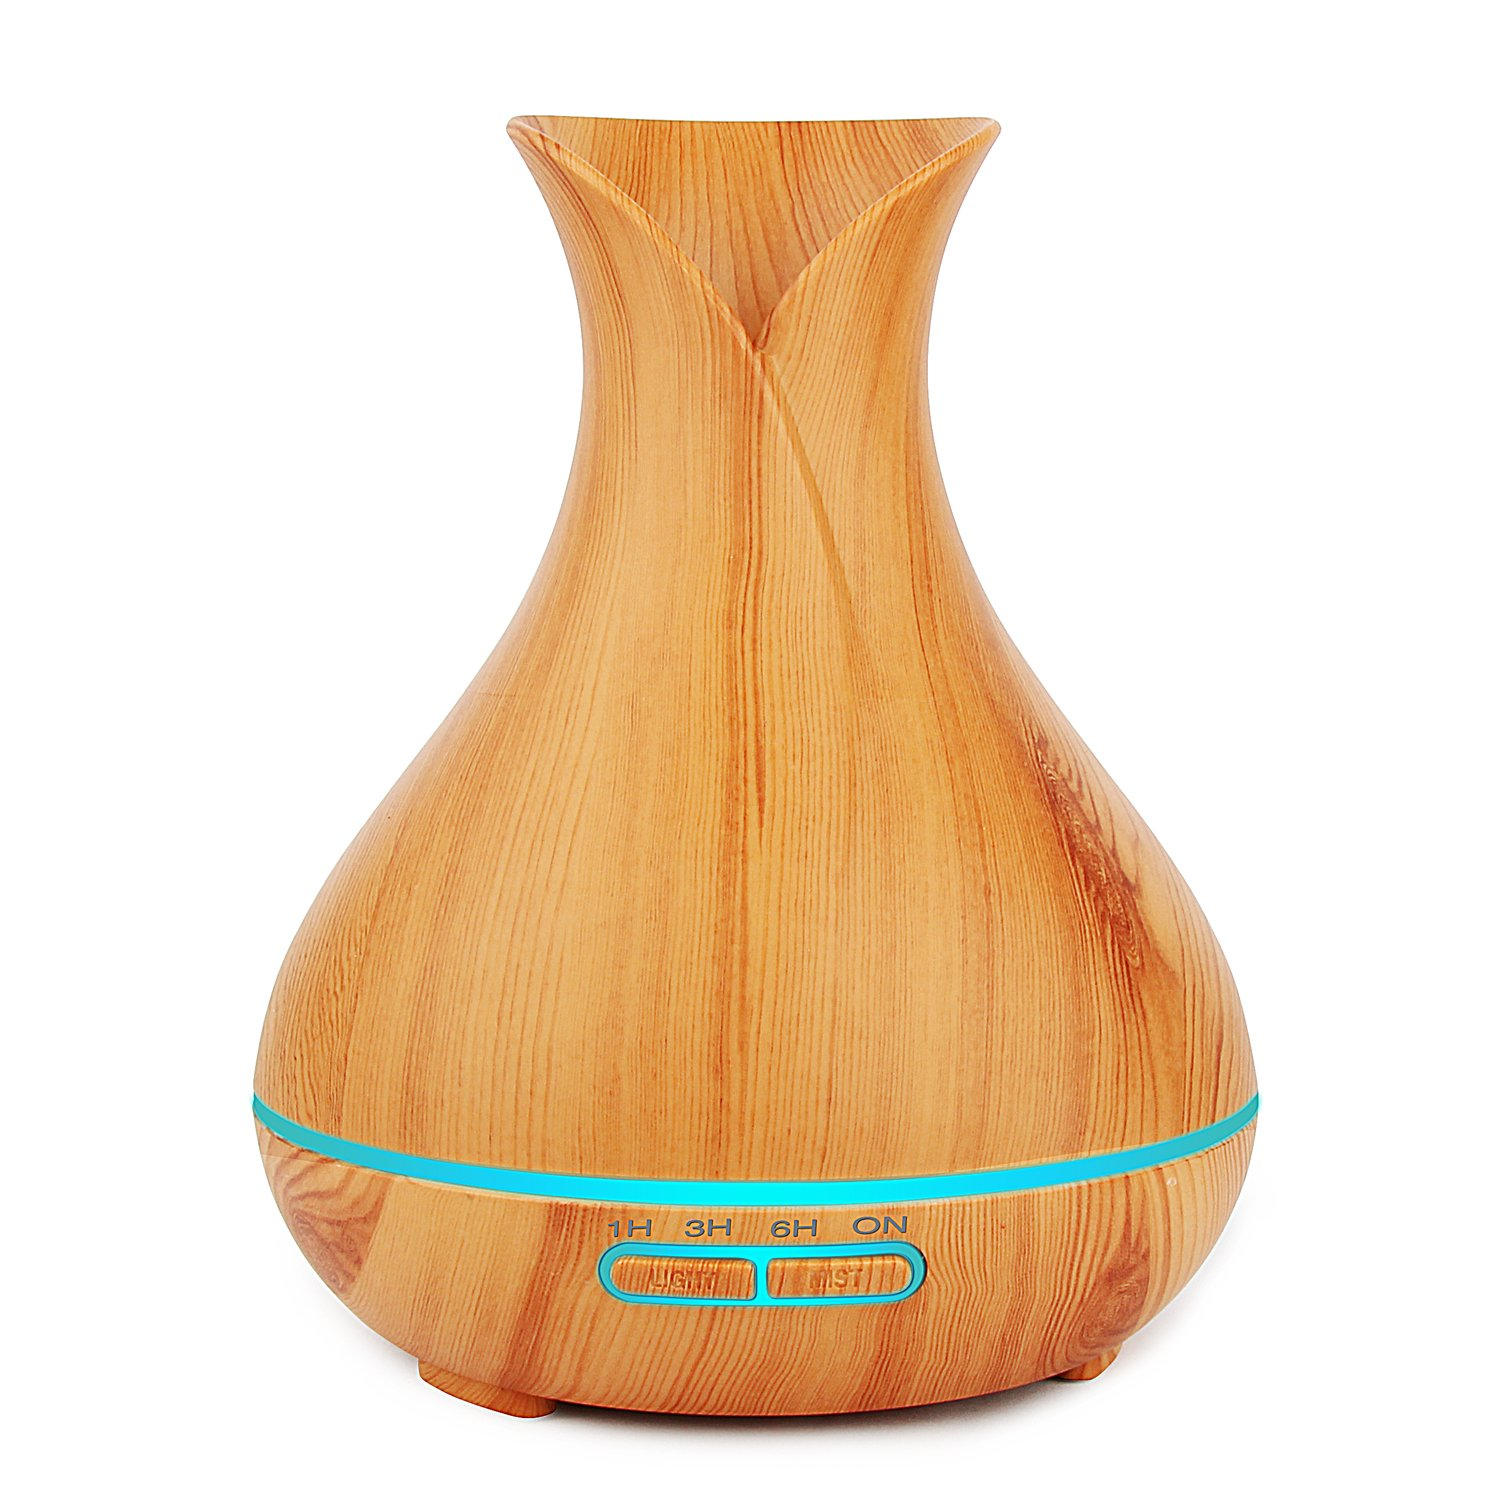 Aroma Oil Diffuser,Modern Wood finishing Mist Humidifier with Auto shut-off for Aroma Essential Oil